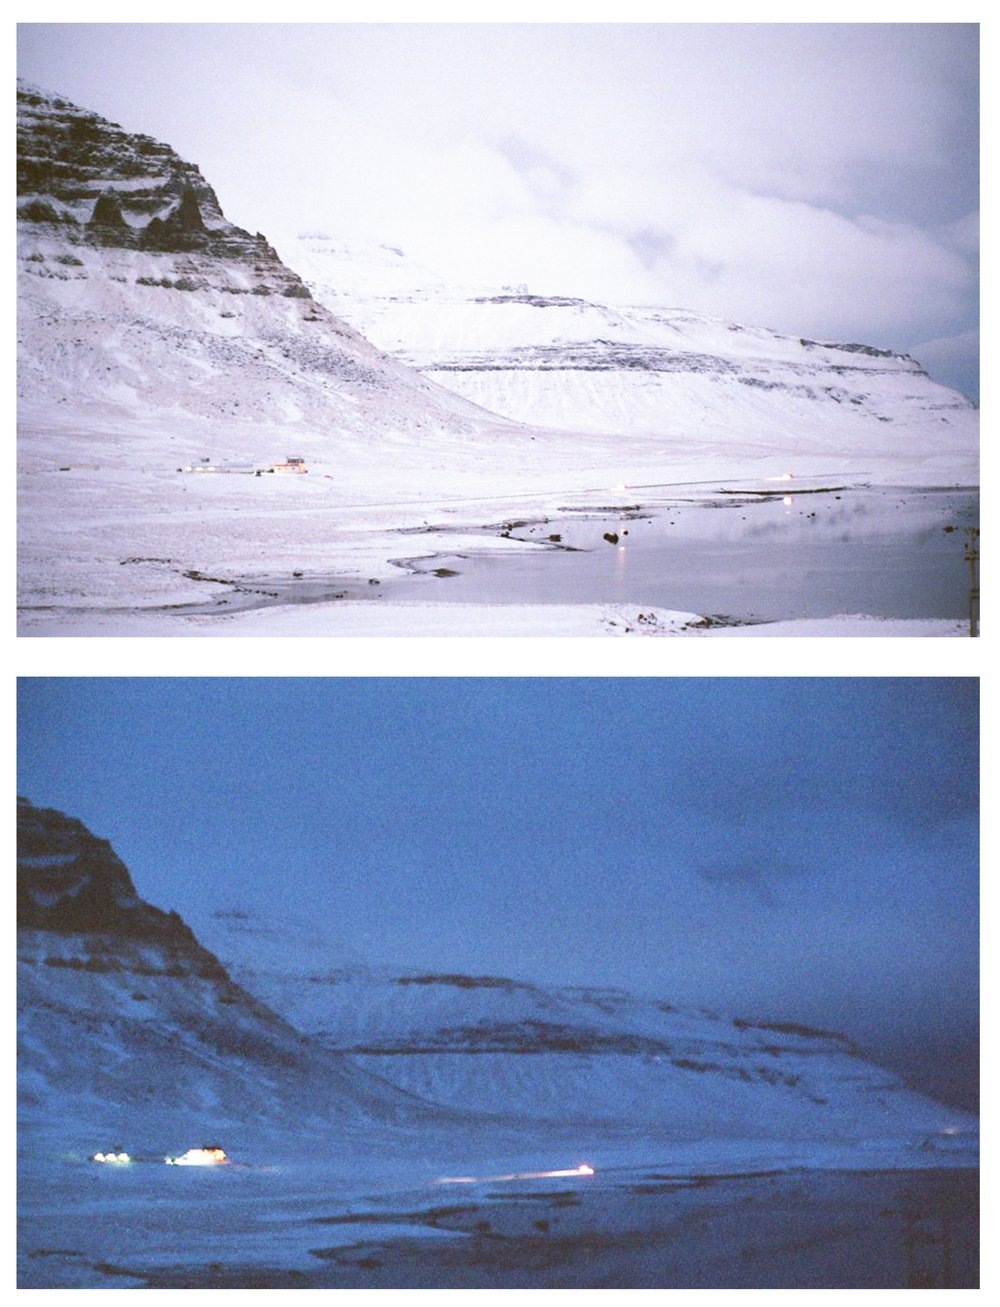 Iceland collage 2e.jpg